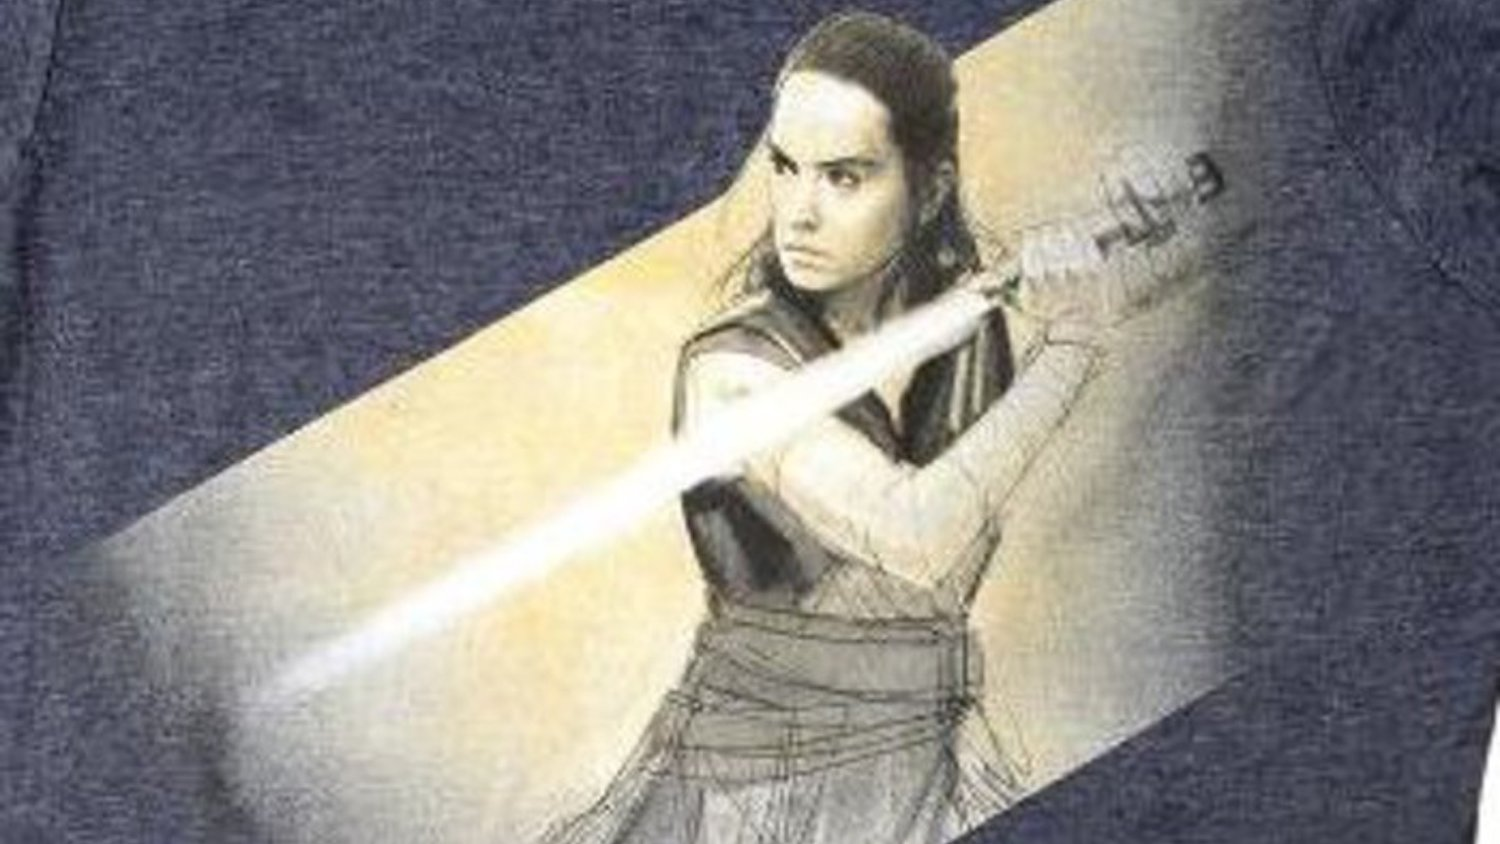 Promo Art For STAR WARS: THE LAST JEDI Shows Us Rey's New Look